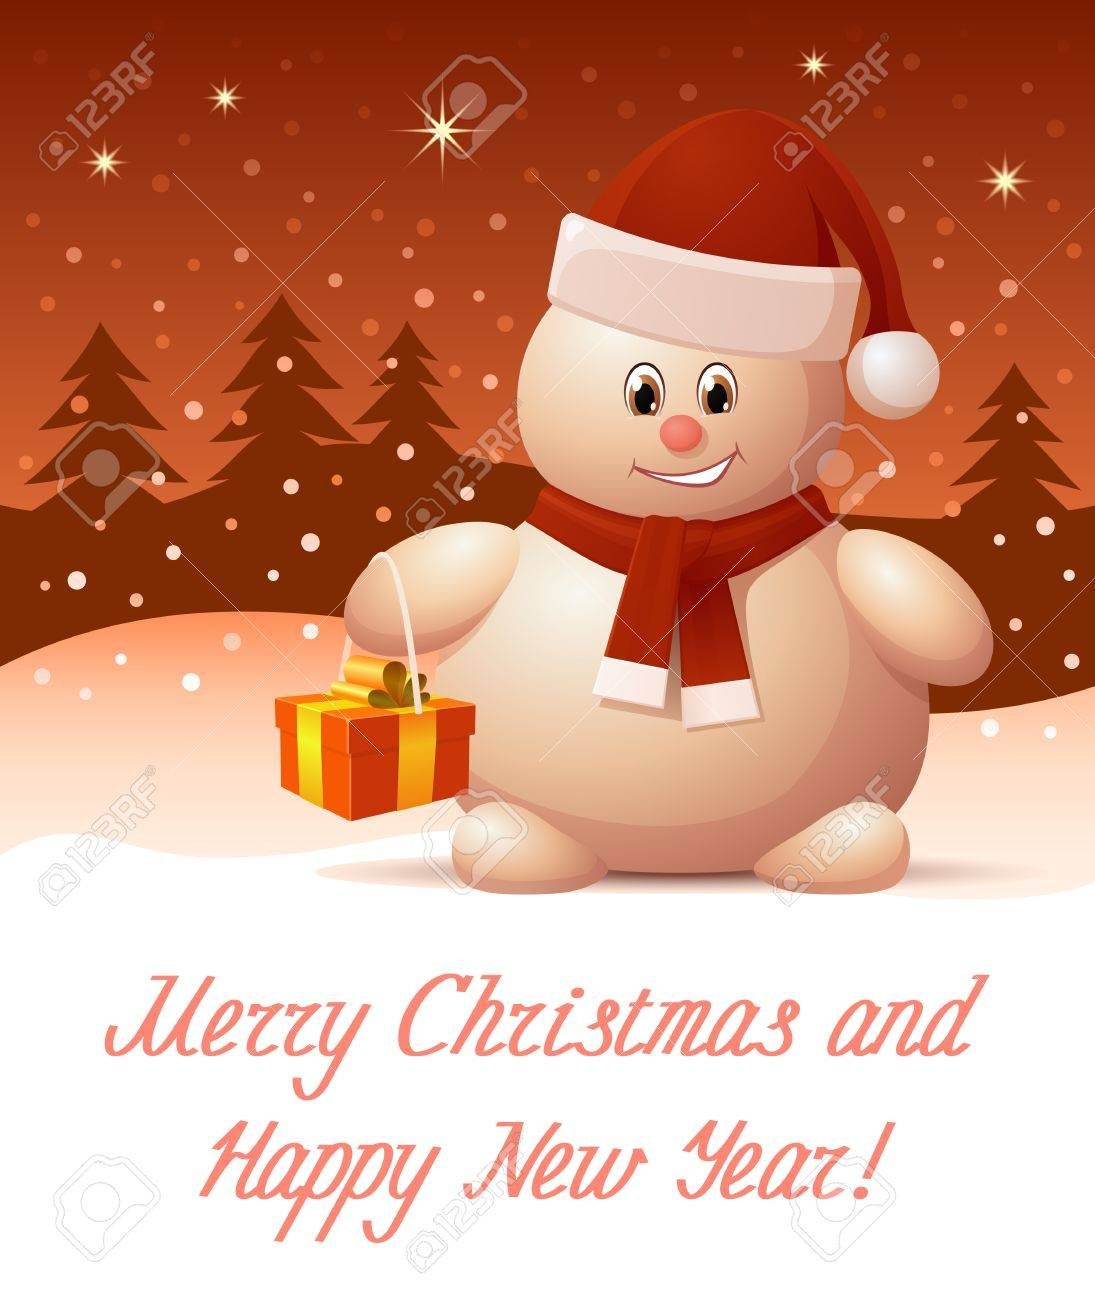 Merry Christmas And Happy New Year Greeting Card Royalty Free ...